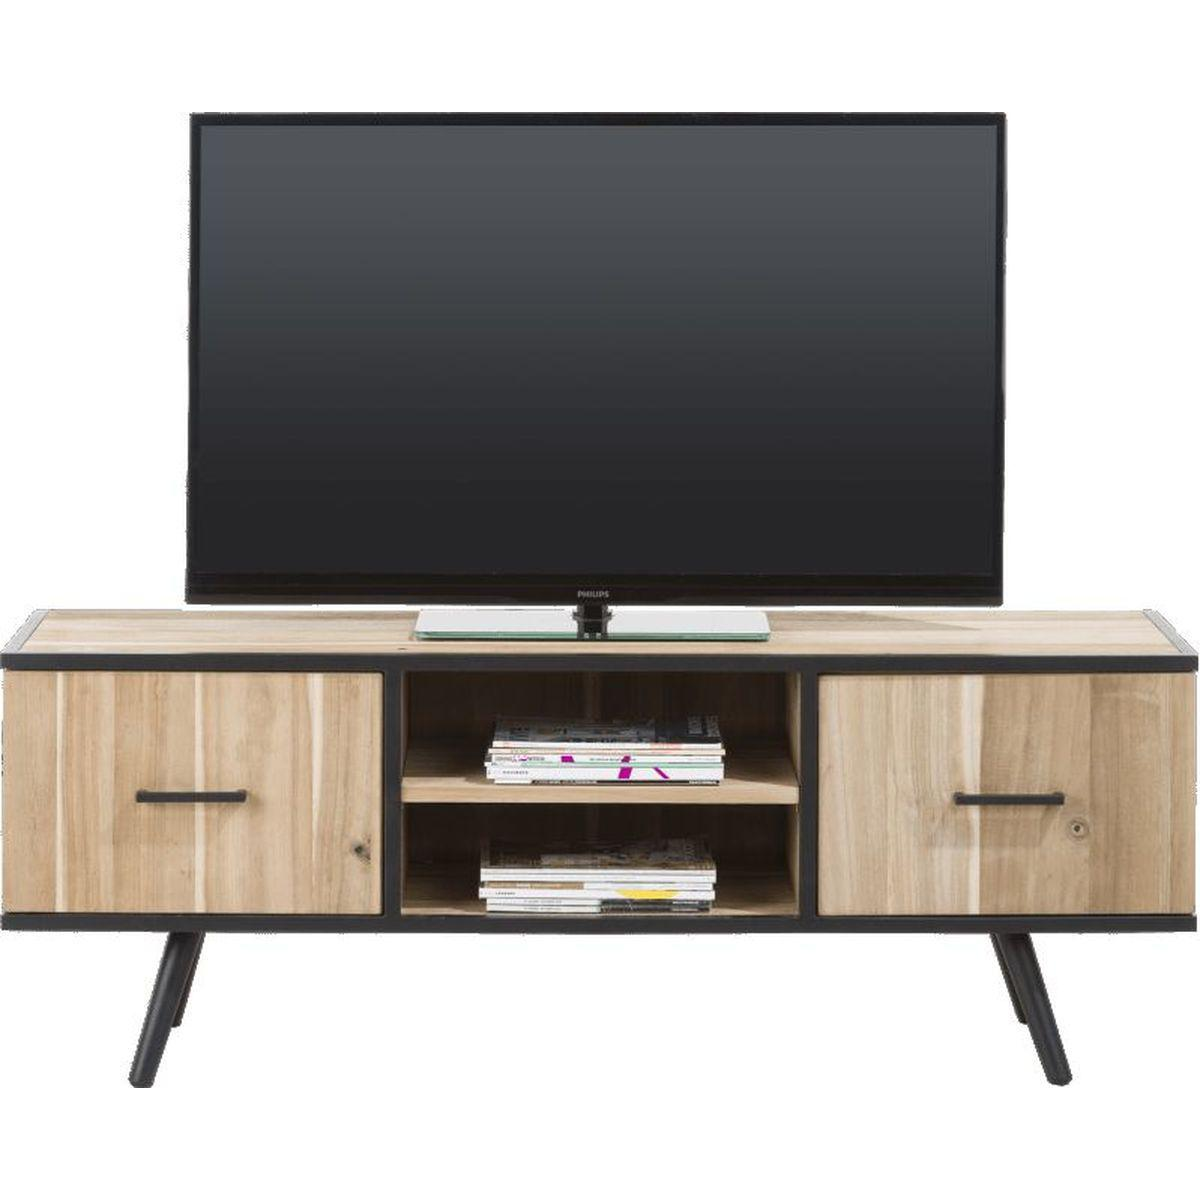 meuble tv kinna xooon 190cm en bois tramwood abitare living